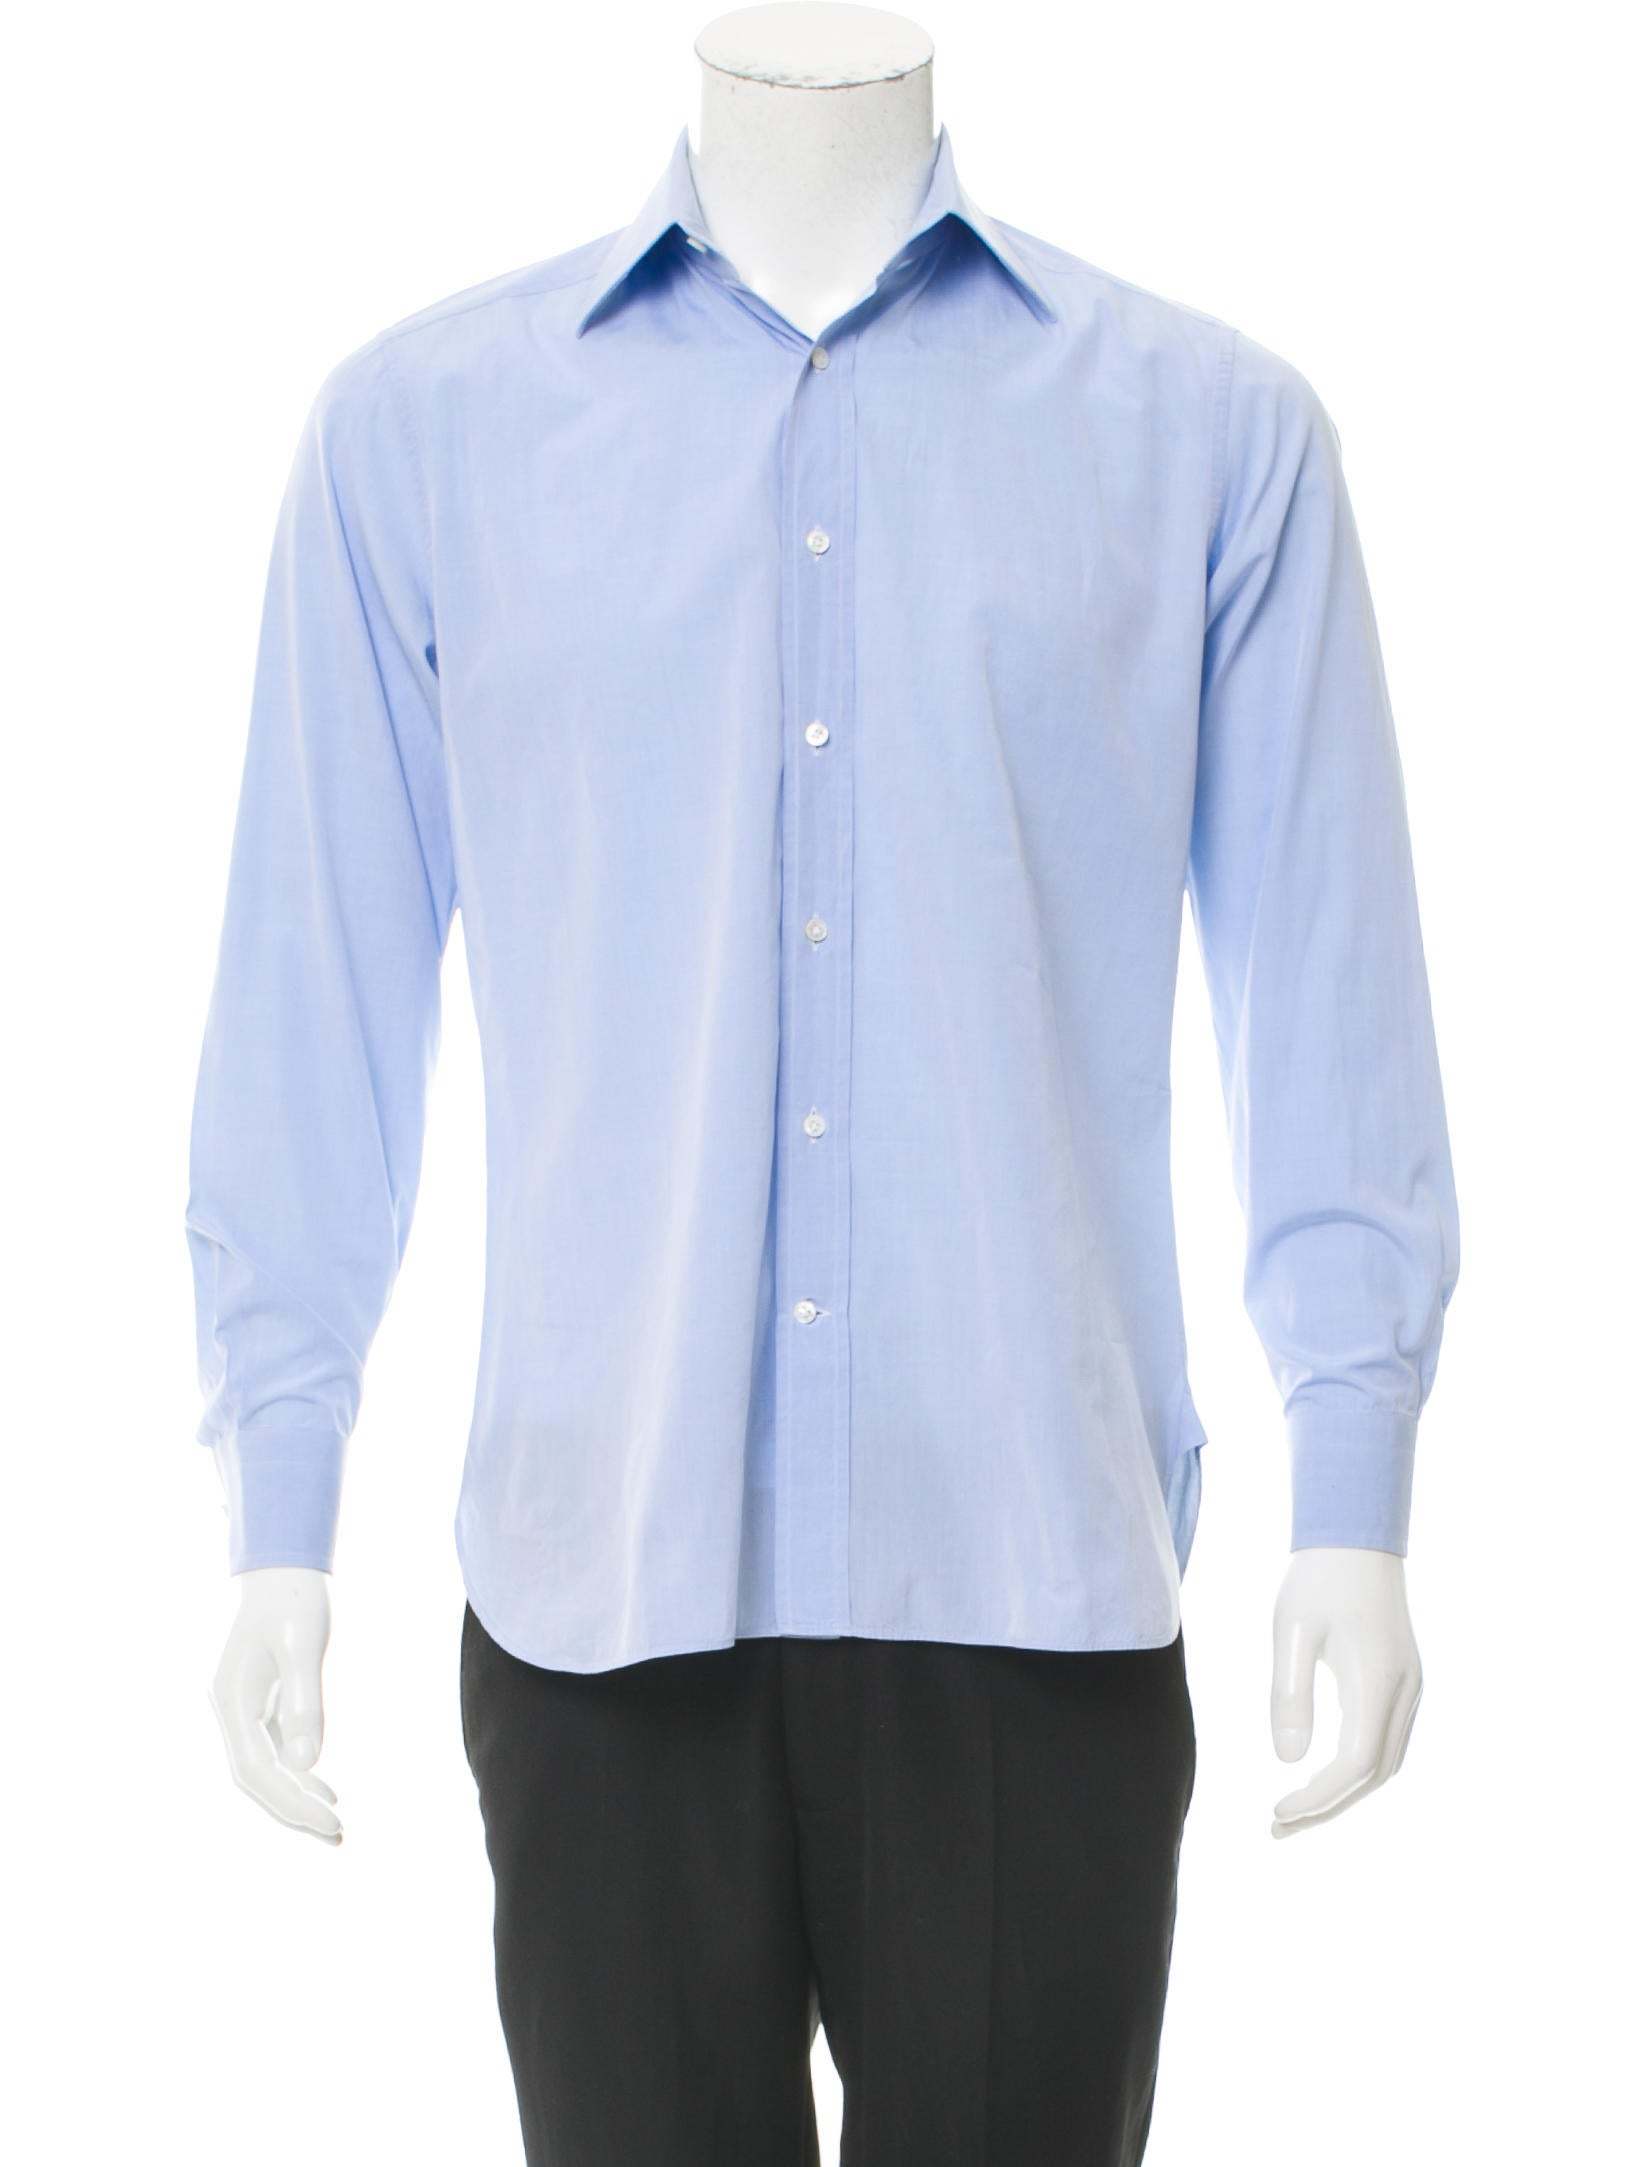 Ports 1961 spread collar button up shirt clothing for Mens wide collar dress shirts